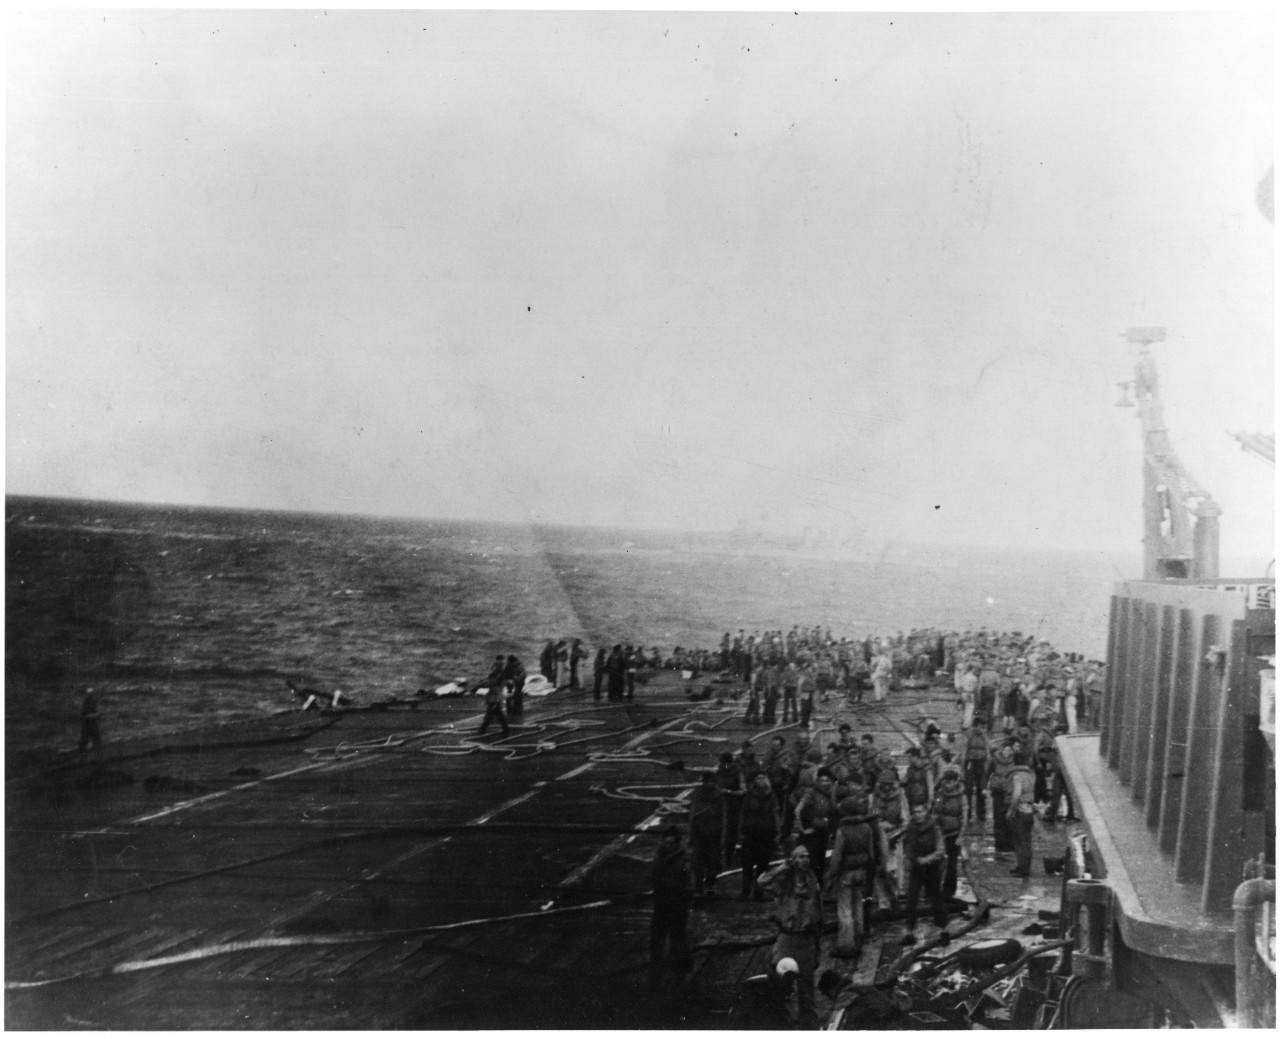 Photo #: 80-G-16811  Battle of the Coral Sea, May 1942